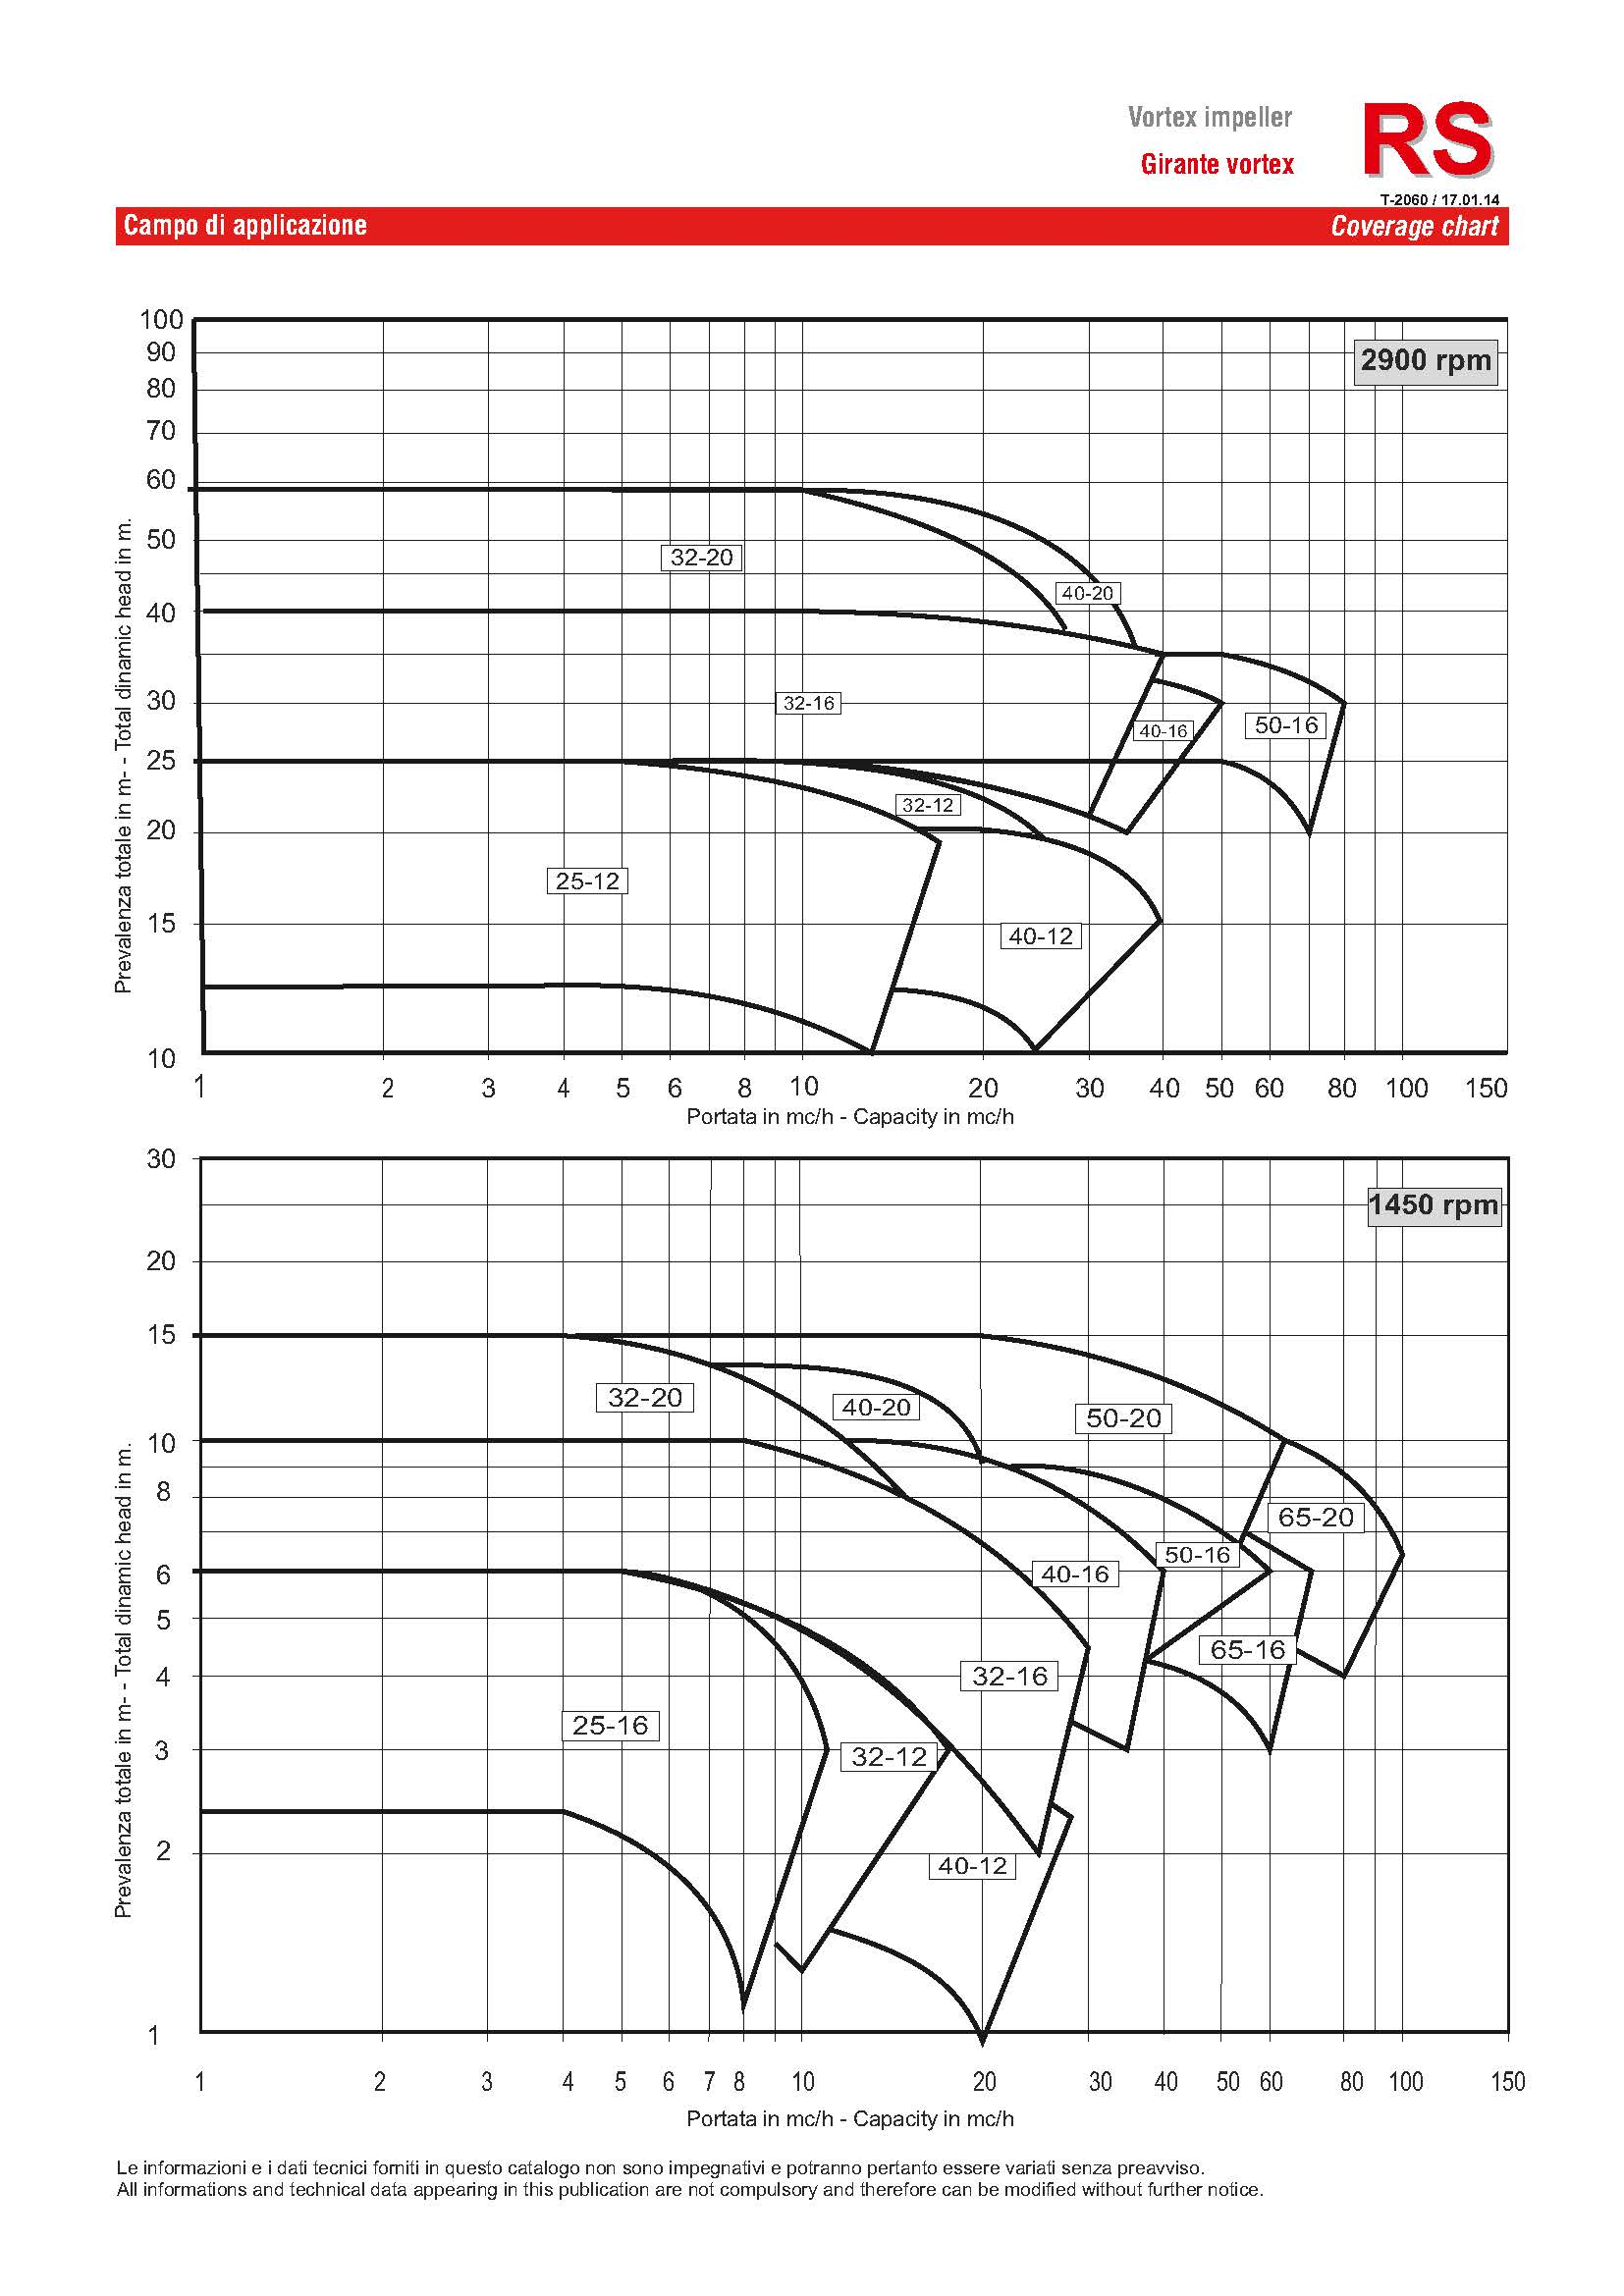 Curves HD HG RS page 3